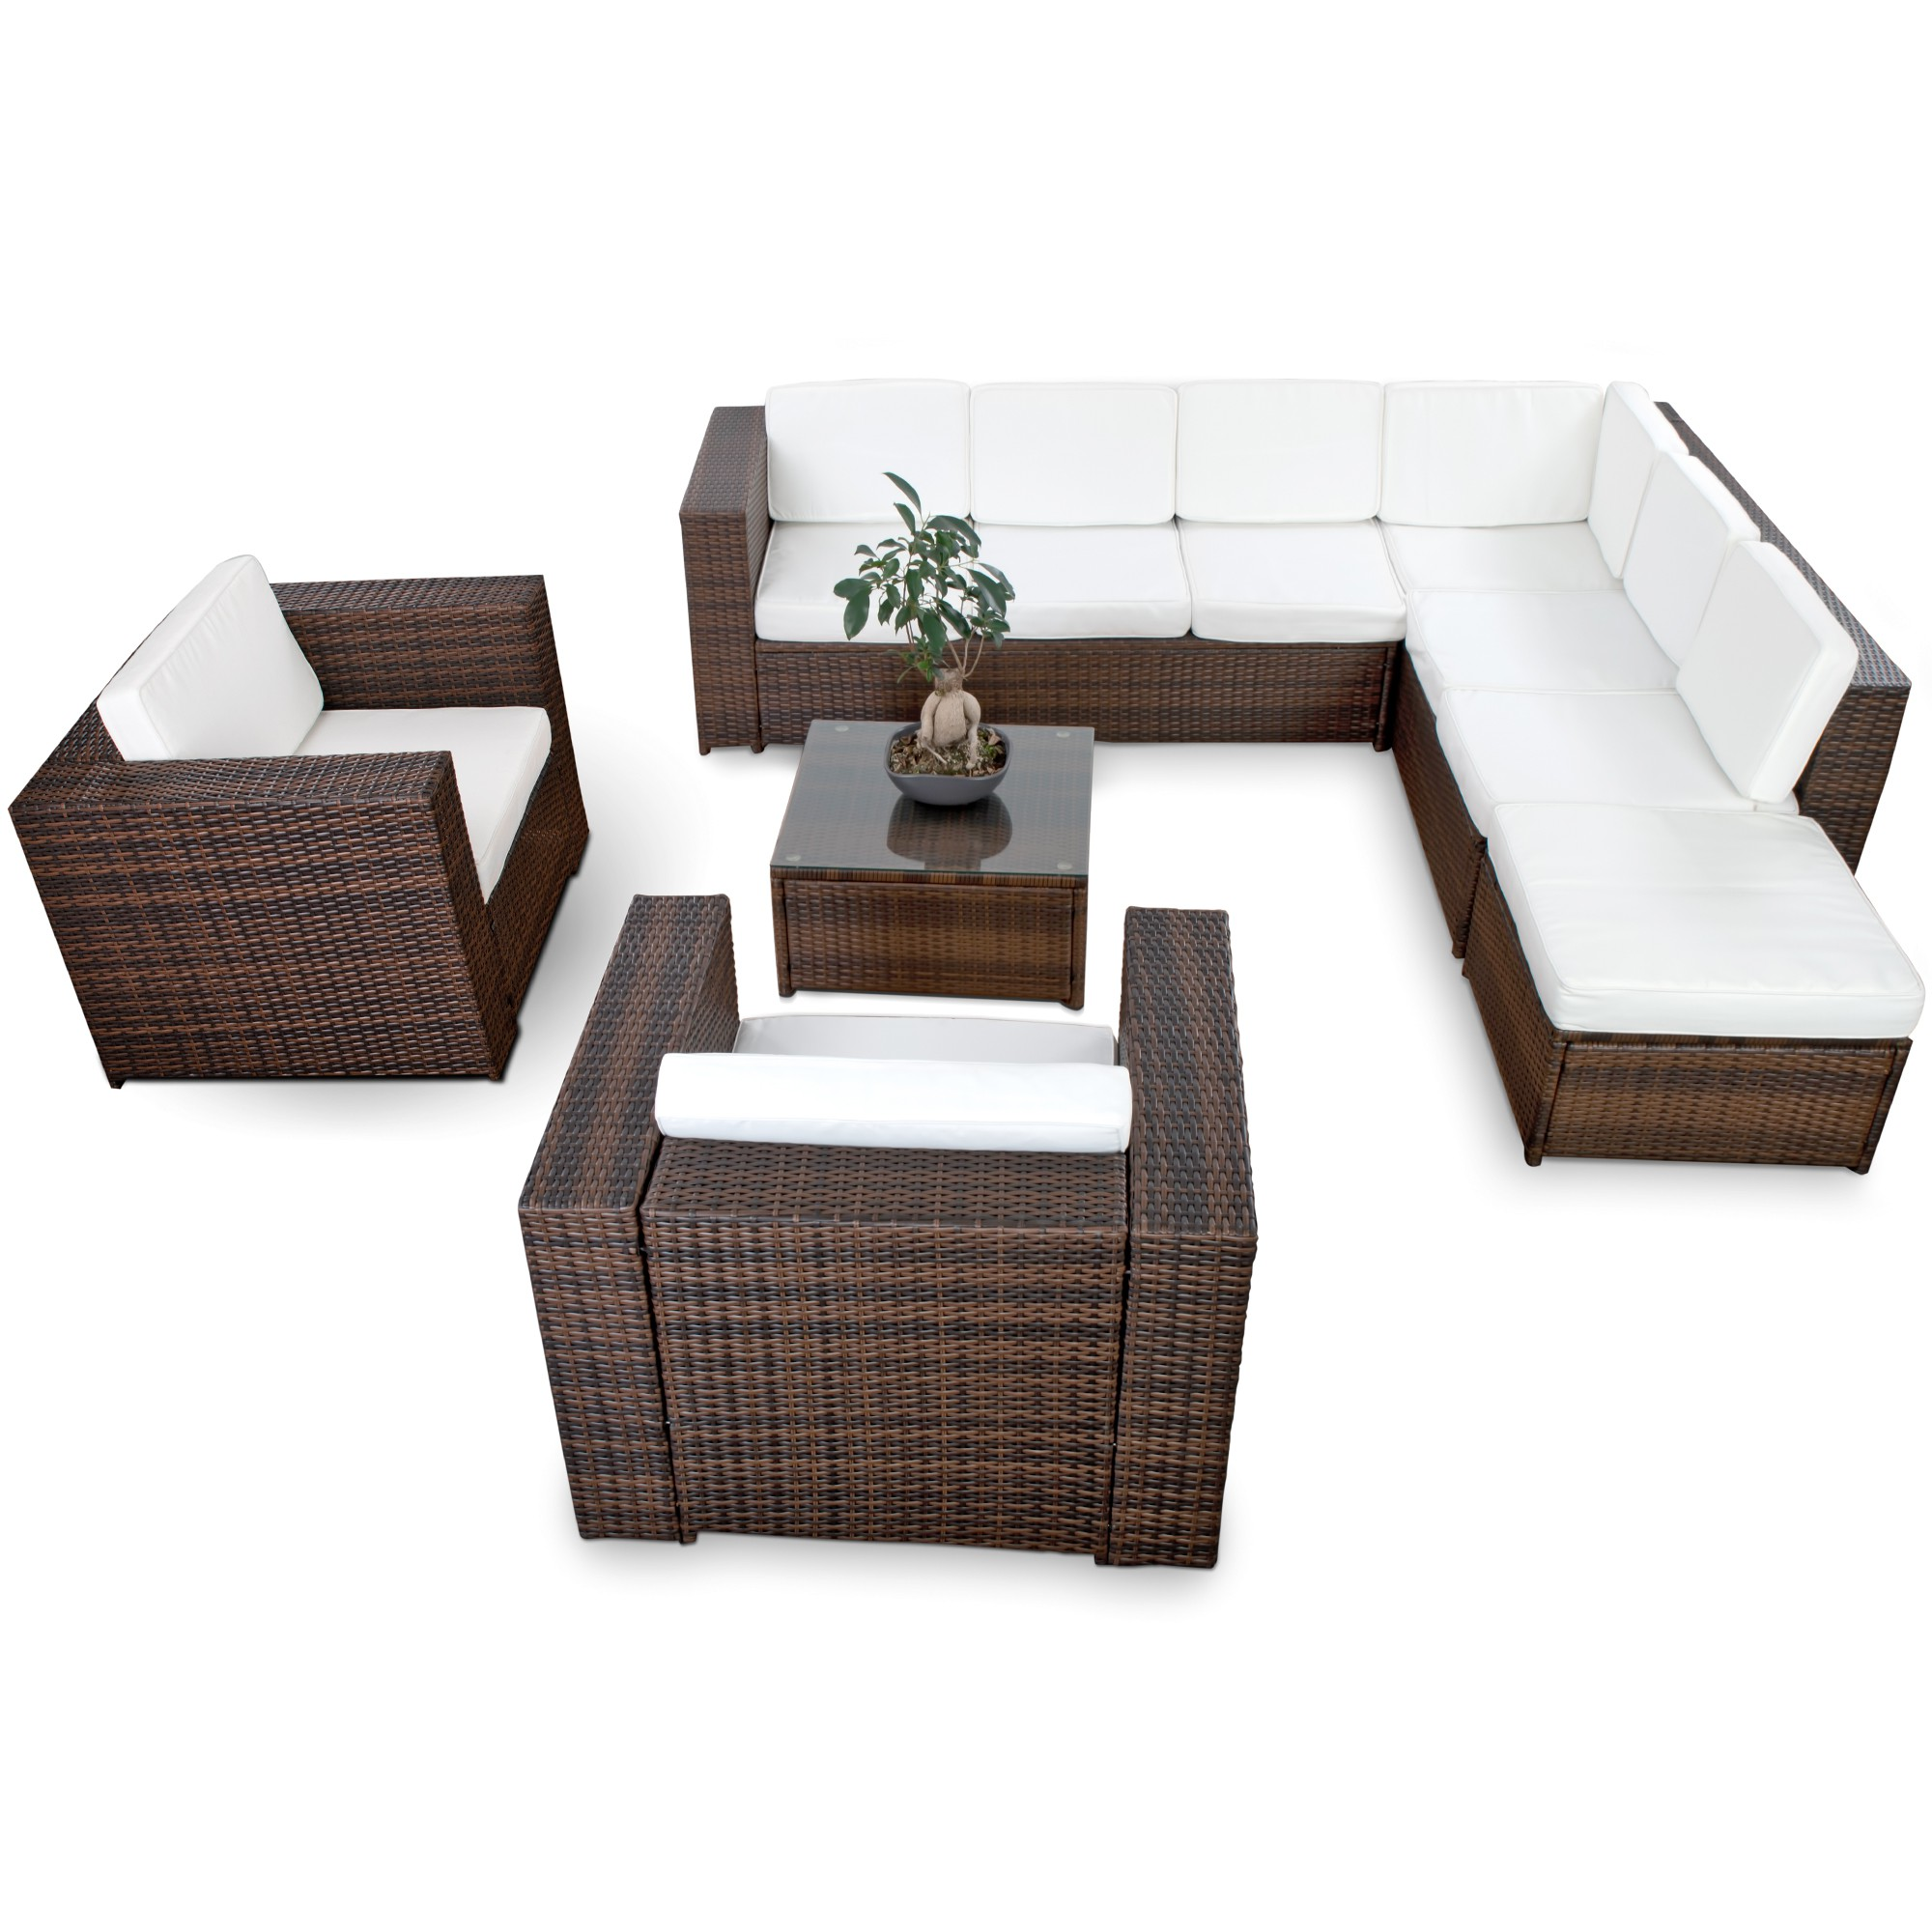 lounge gartenm bel set g nstig gartenm bel lounge set kaufen. Black Bedroom Furniture Sets. Home Design Ideas